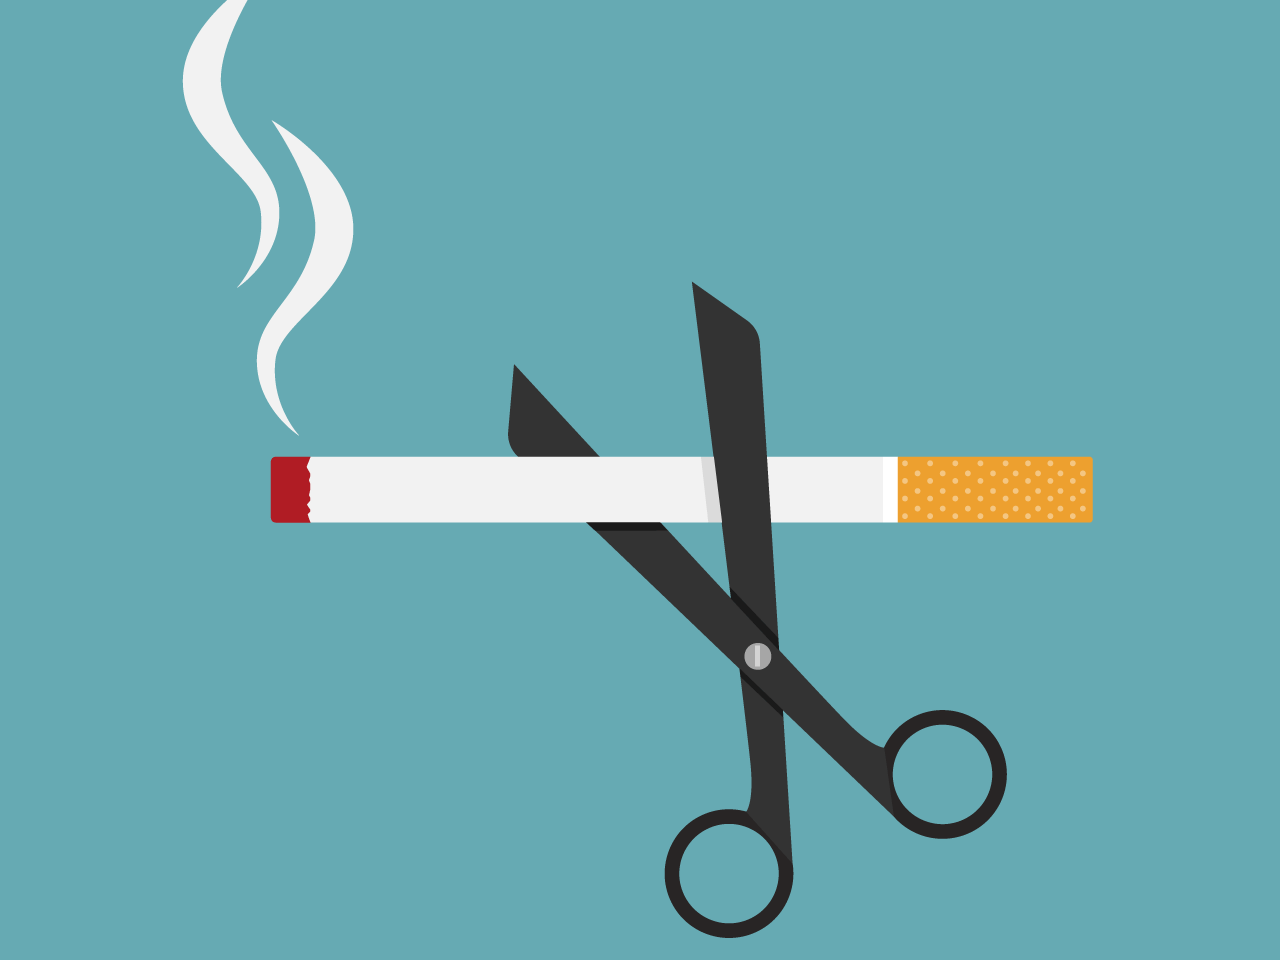 Tobacco! When smoking turns into a slippery habit for addicts